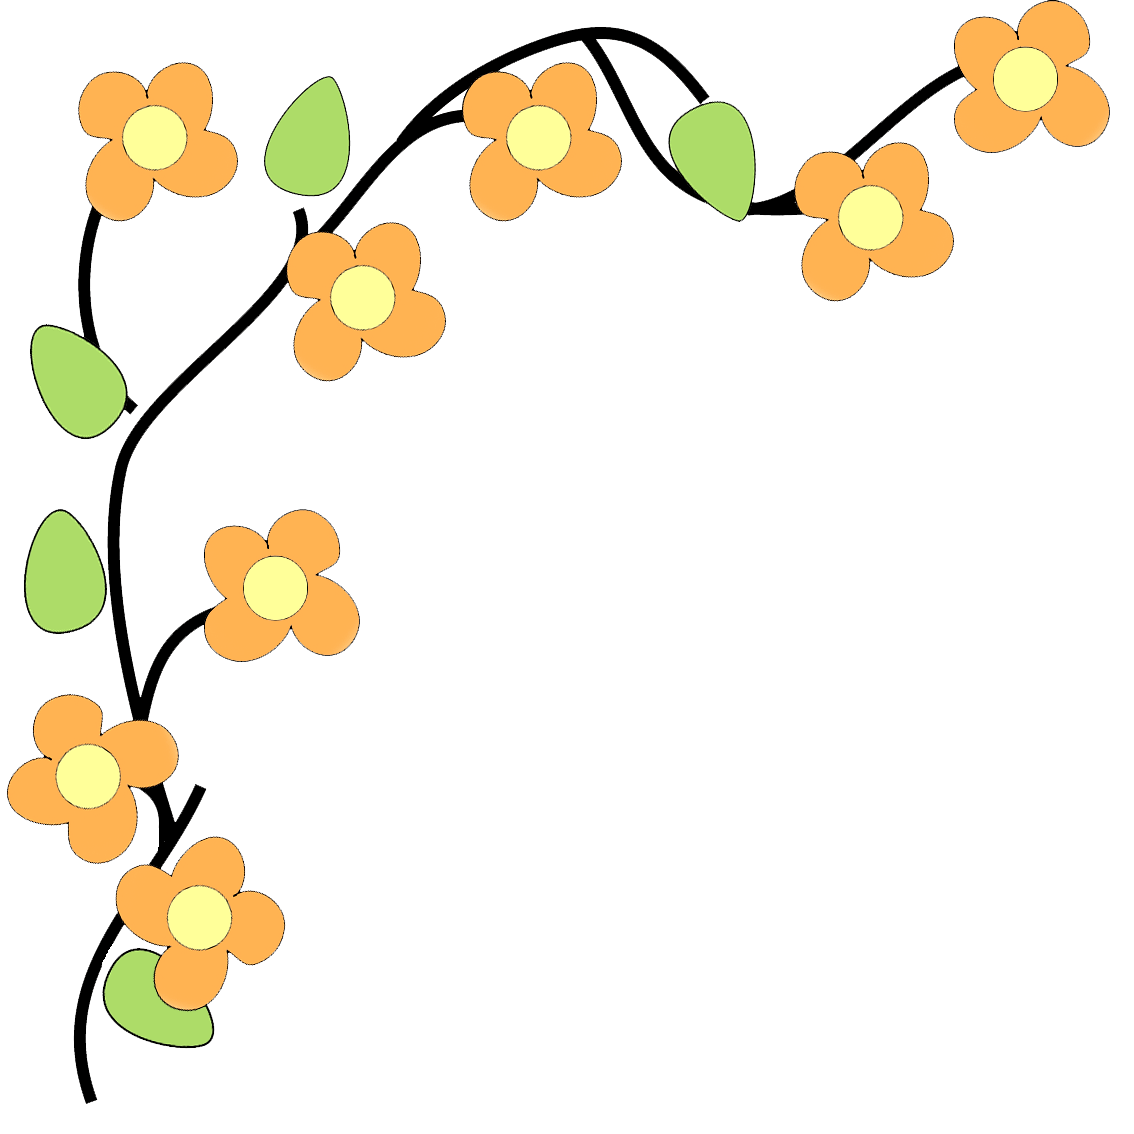 1134x1134 Border Cliparts Flower Many Interesting Cliparts